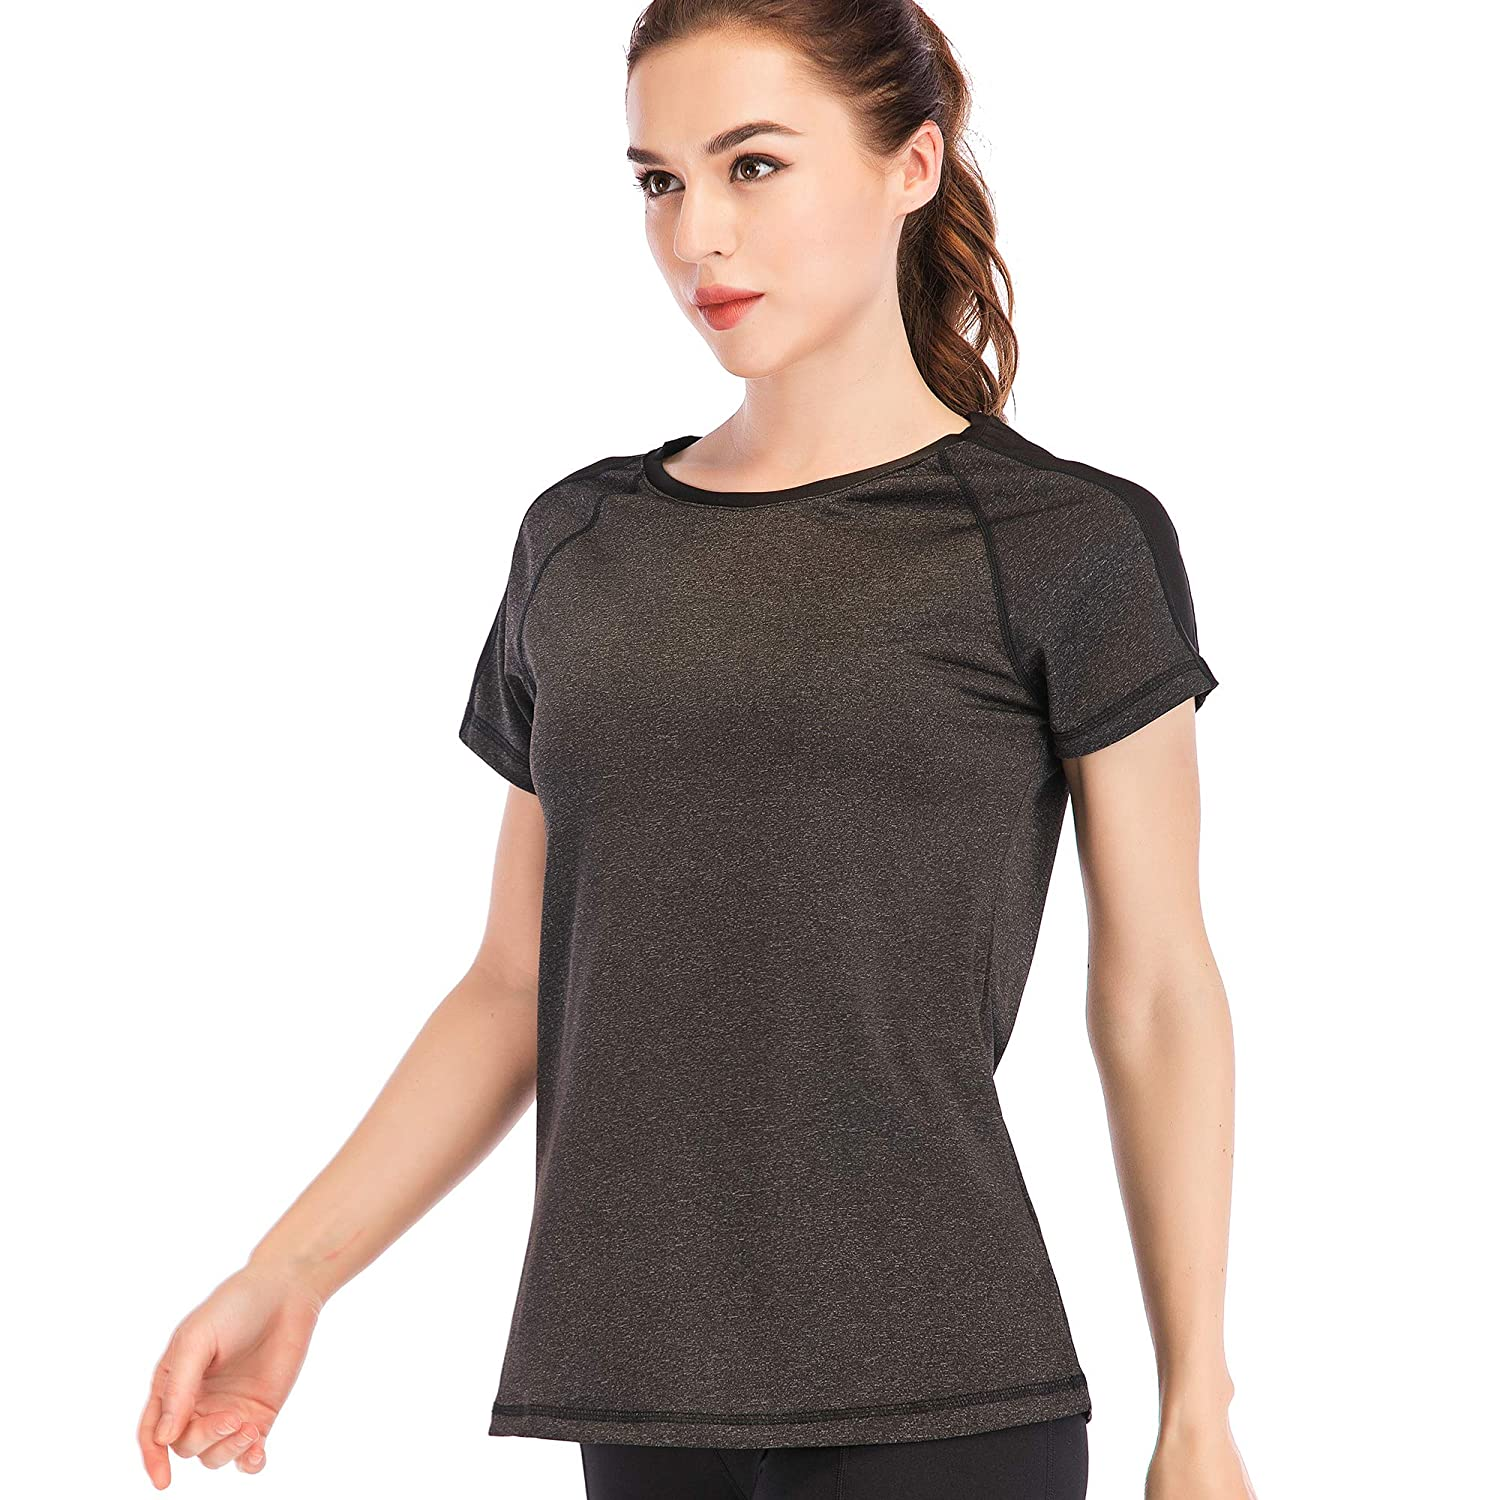 c2e0bfd5 Amazon.com: Women's Short Sleeve Yoga Tops Workout Activewear Dry Fit Hiking  T-Shirt: Clothing